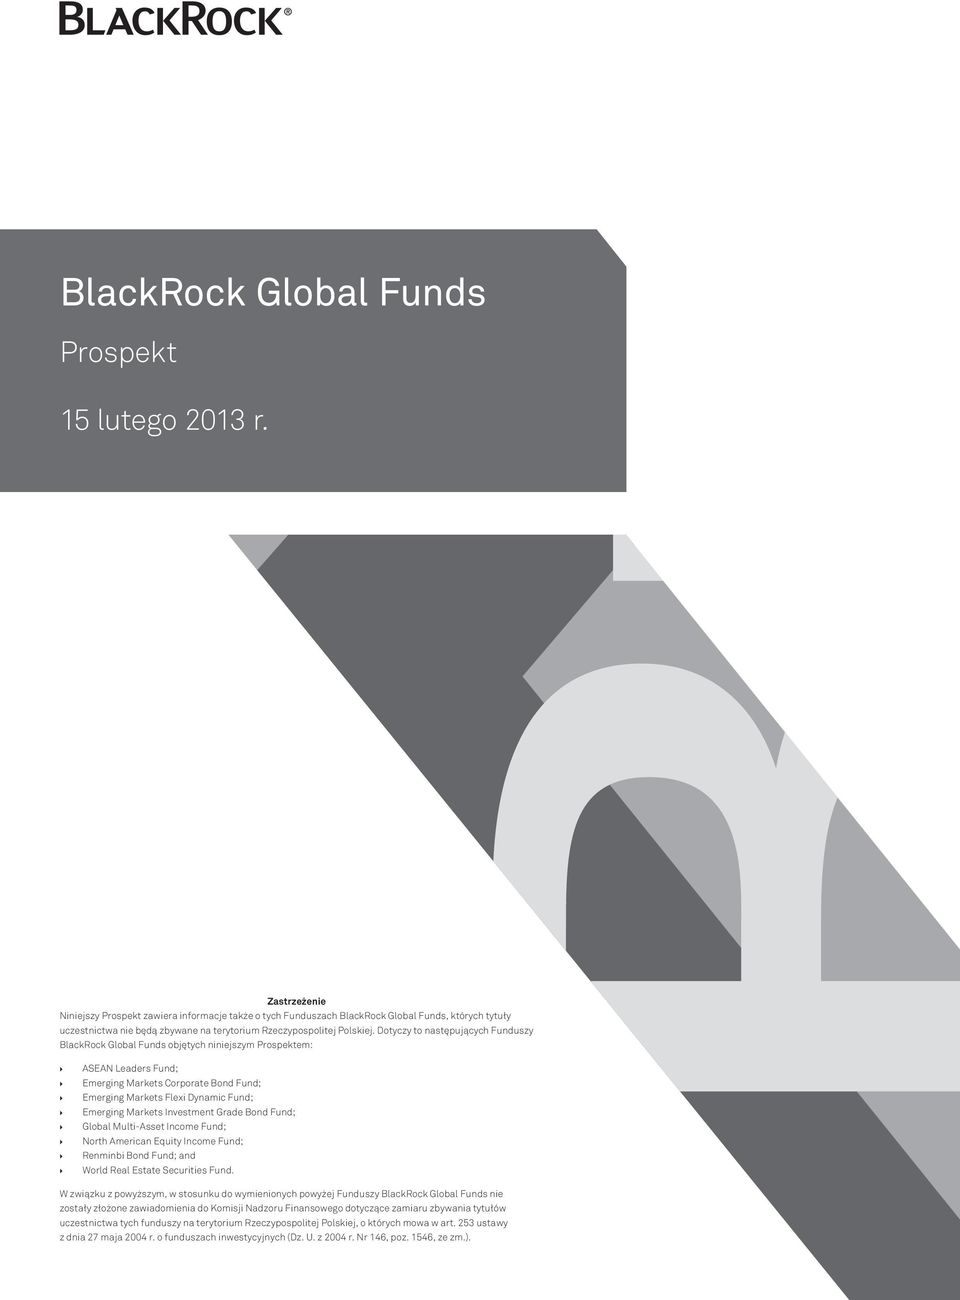 Dotyczy to następujących Funduszy BlackRock Global Funds objętych niniejszym Prospektem: ASEAN Leaders Fund; Emerging Markets Corporate Bond Fund; Emerging Markets Flexi Dynamic Fund; Emerging